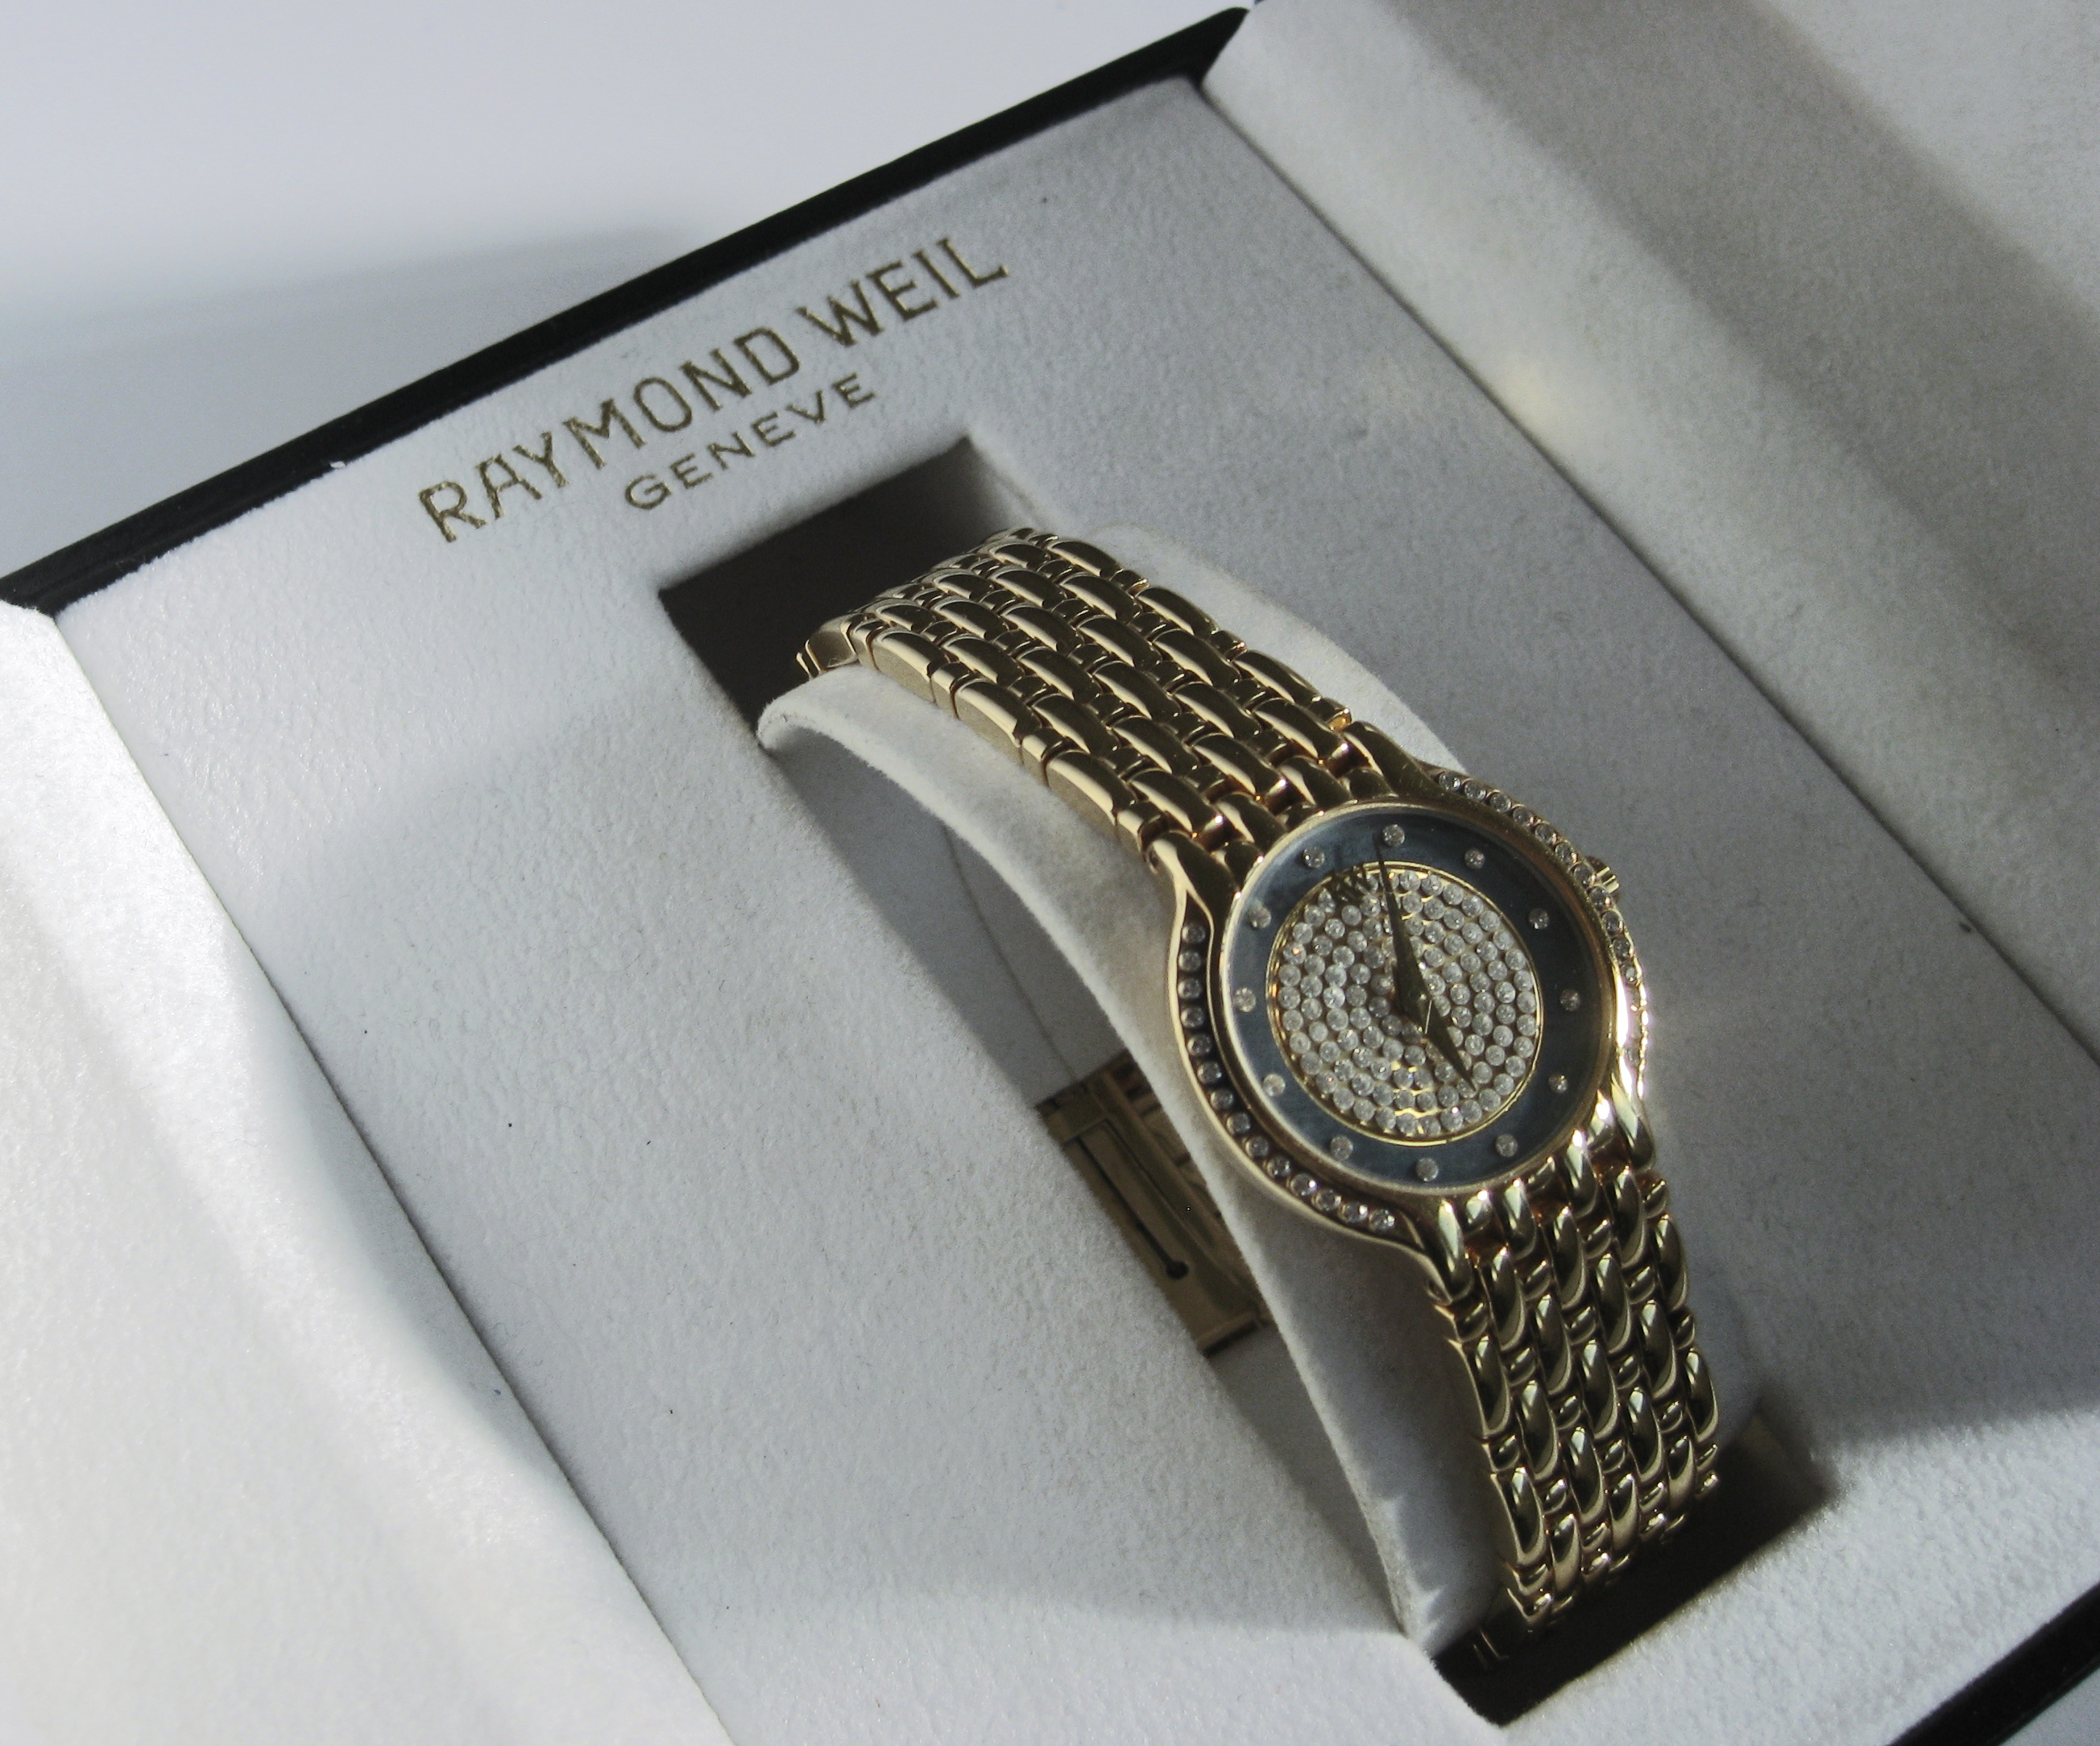 Raymond Weil - quartz lady's bracelet watch